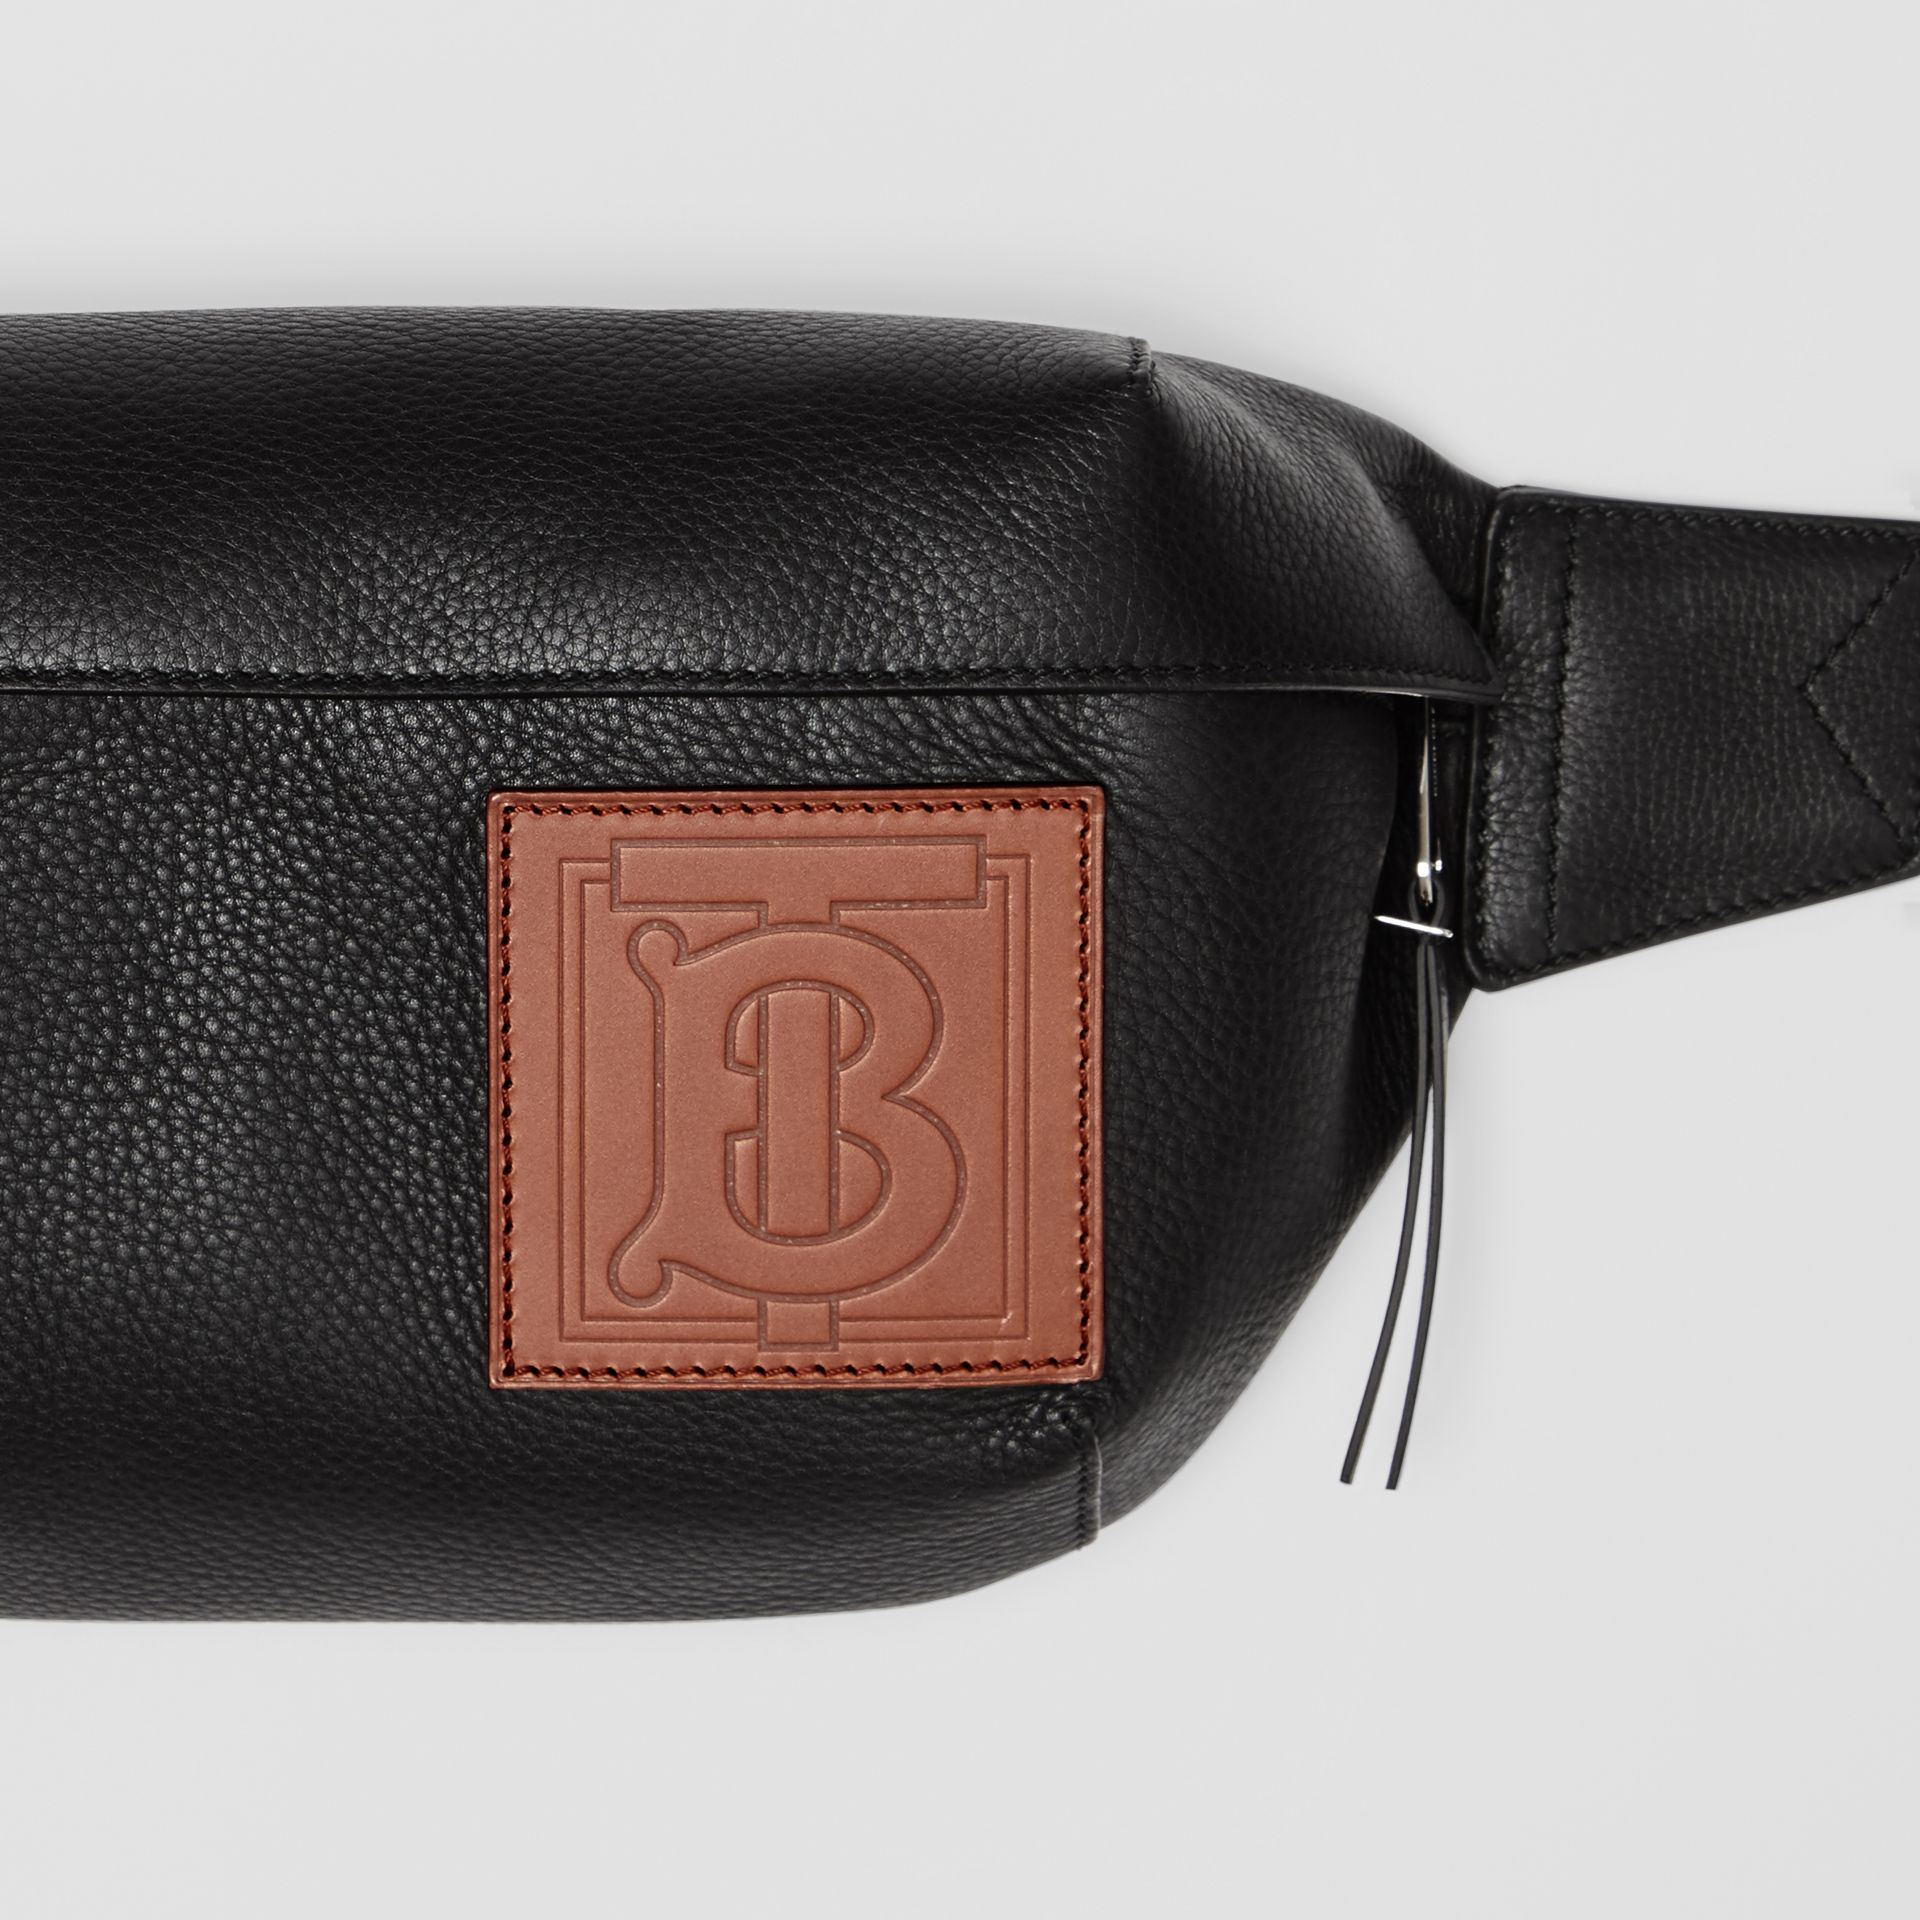 Medium Monogram Motif Leather Bum Bag in Black | Burberry United Kingdom - gallery image 1